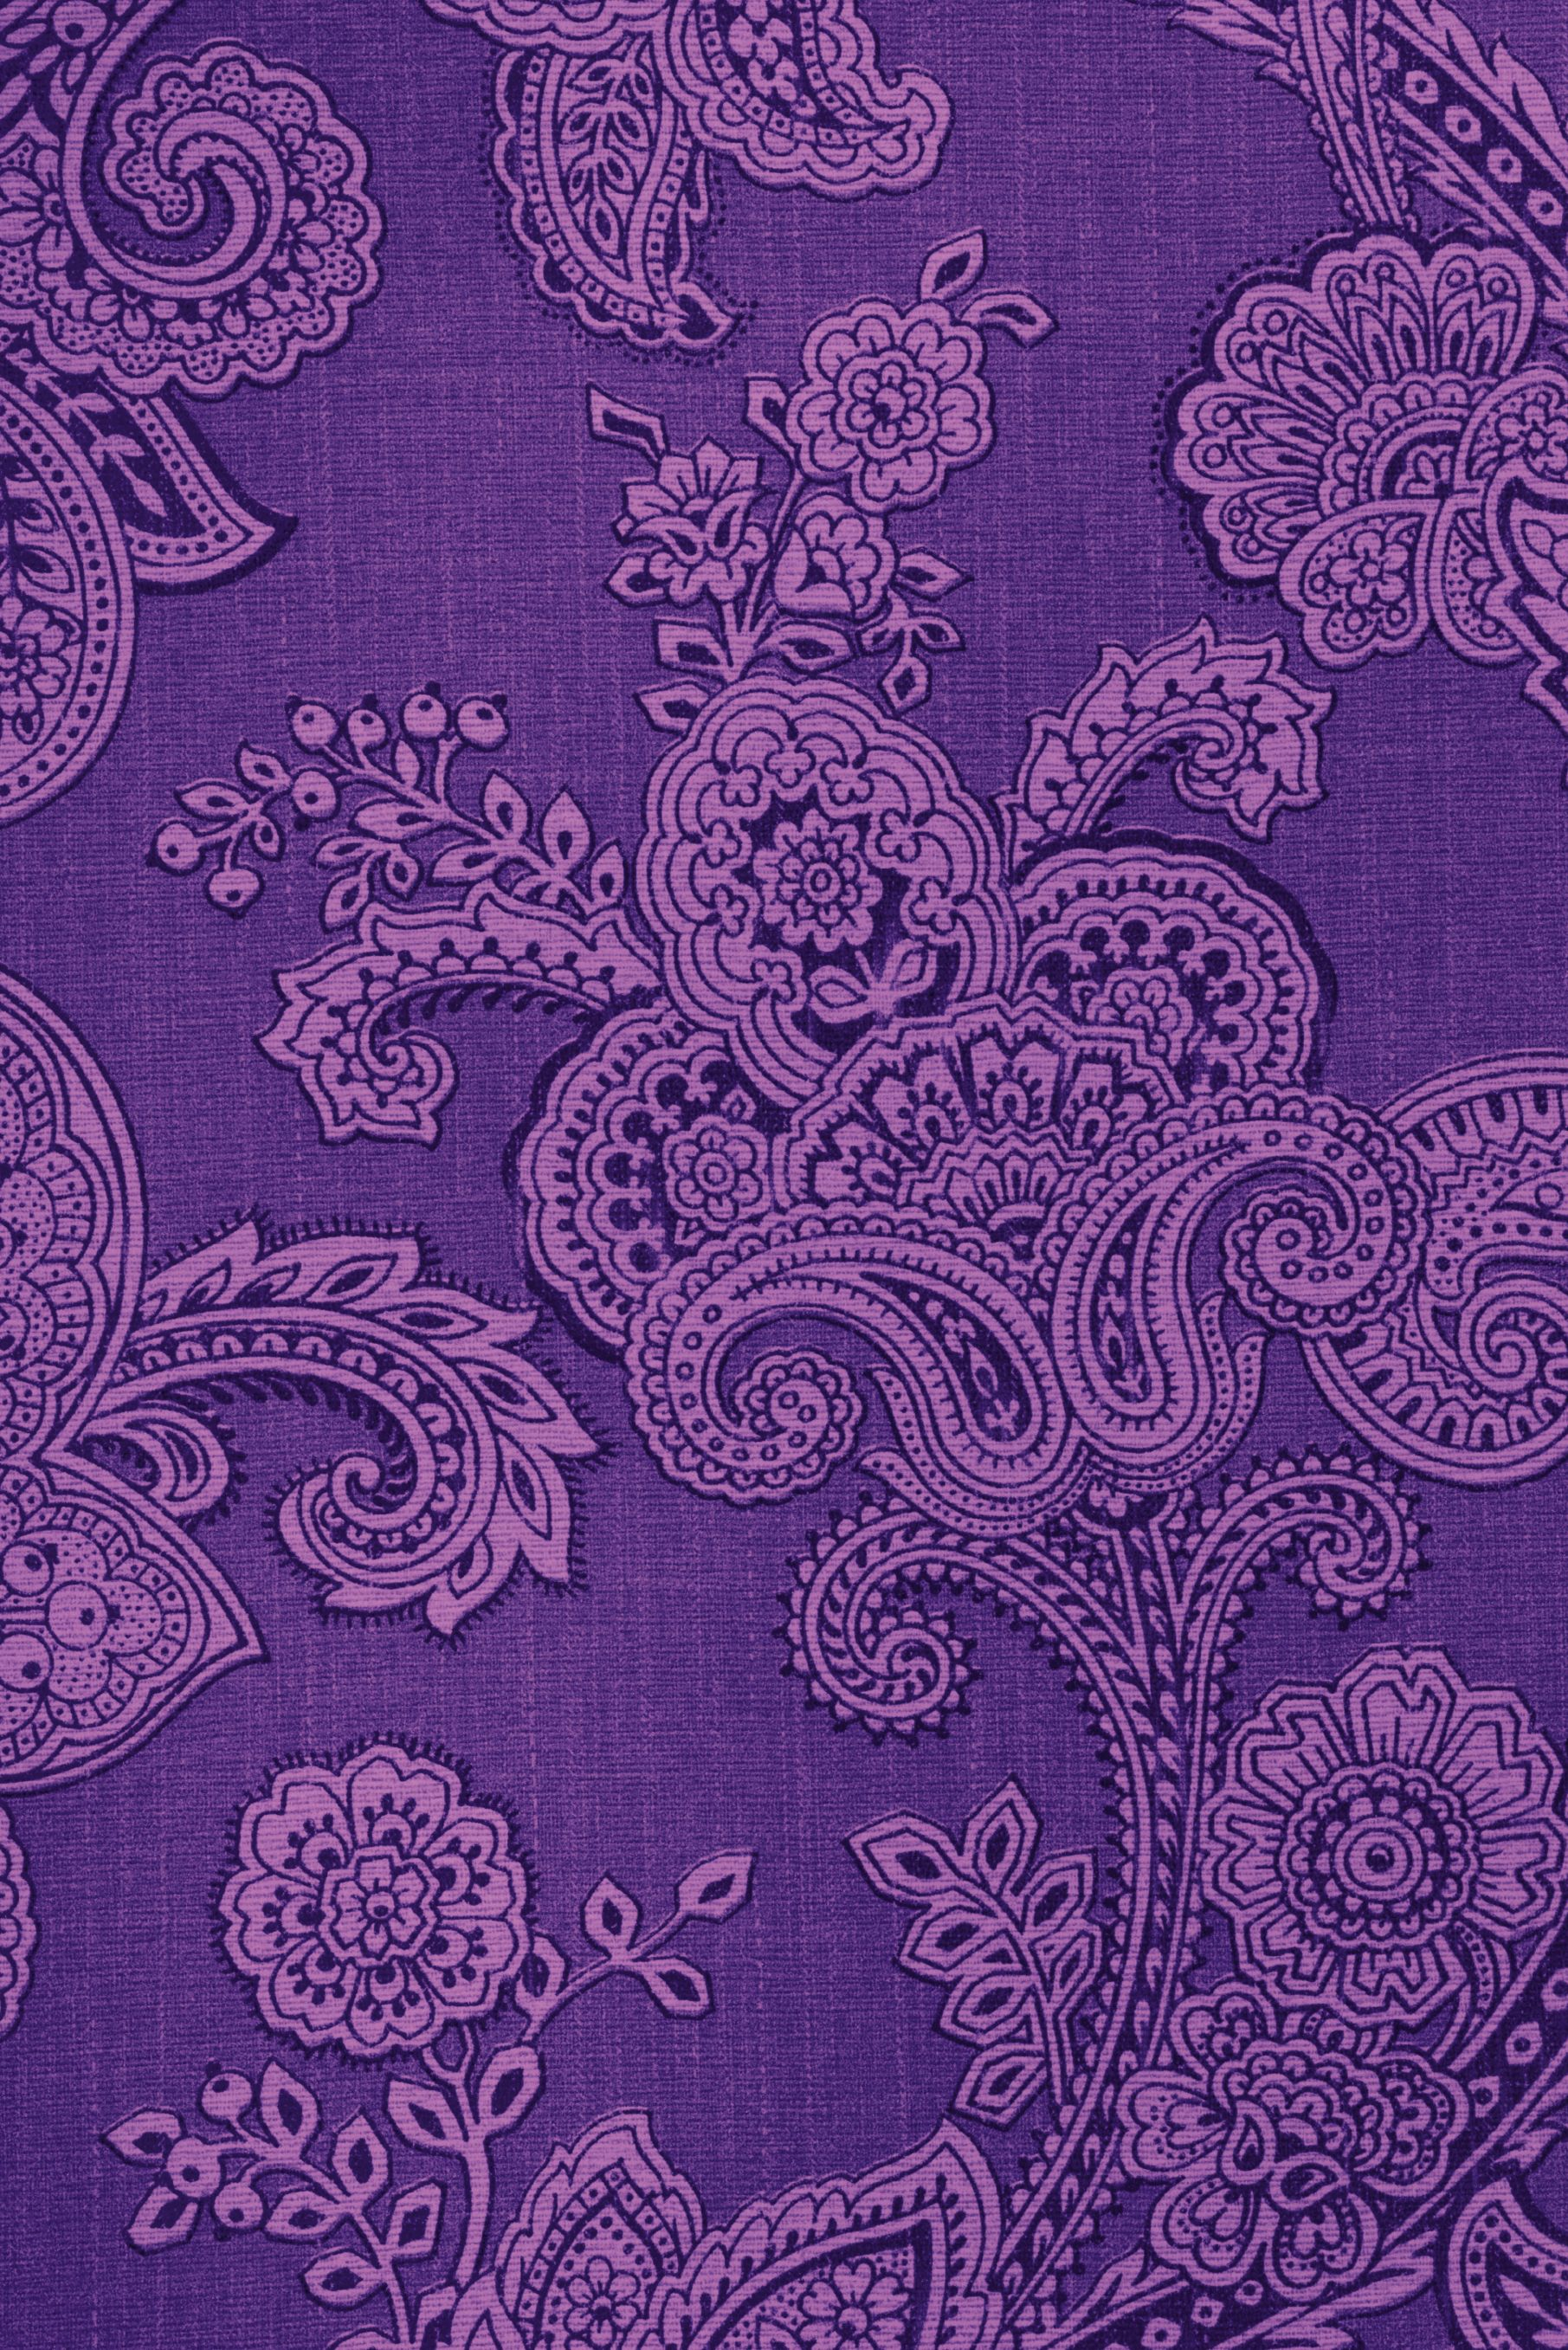 old paisley~ Oh I would just love so much to paper a wall in the